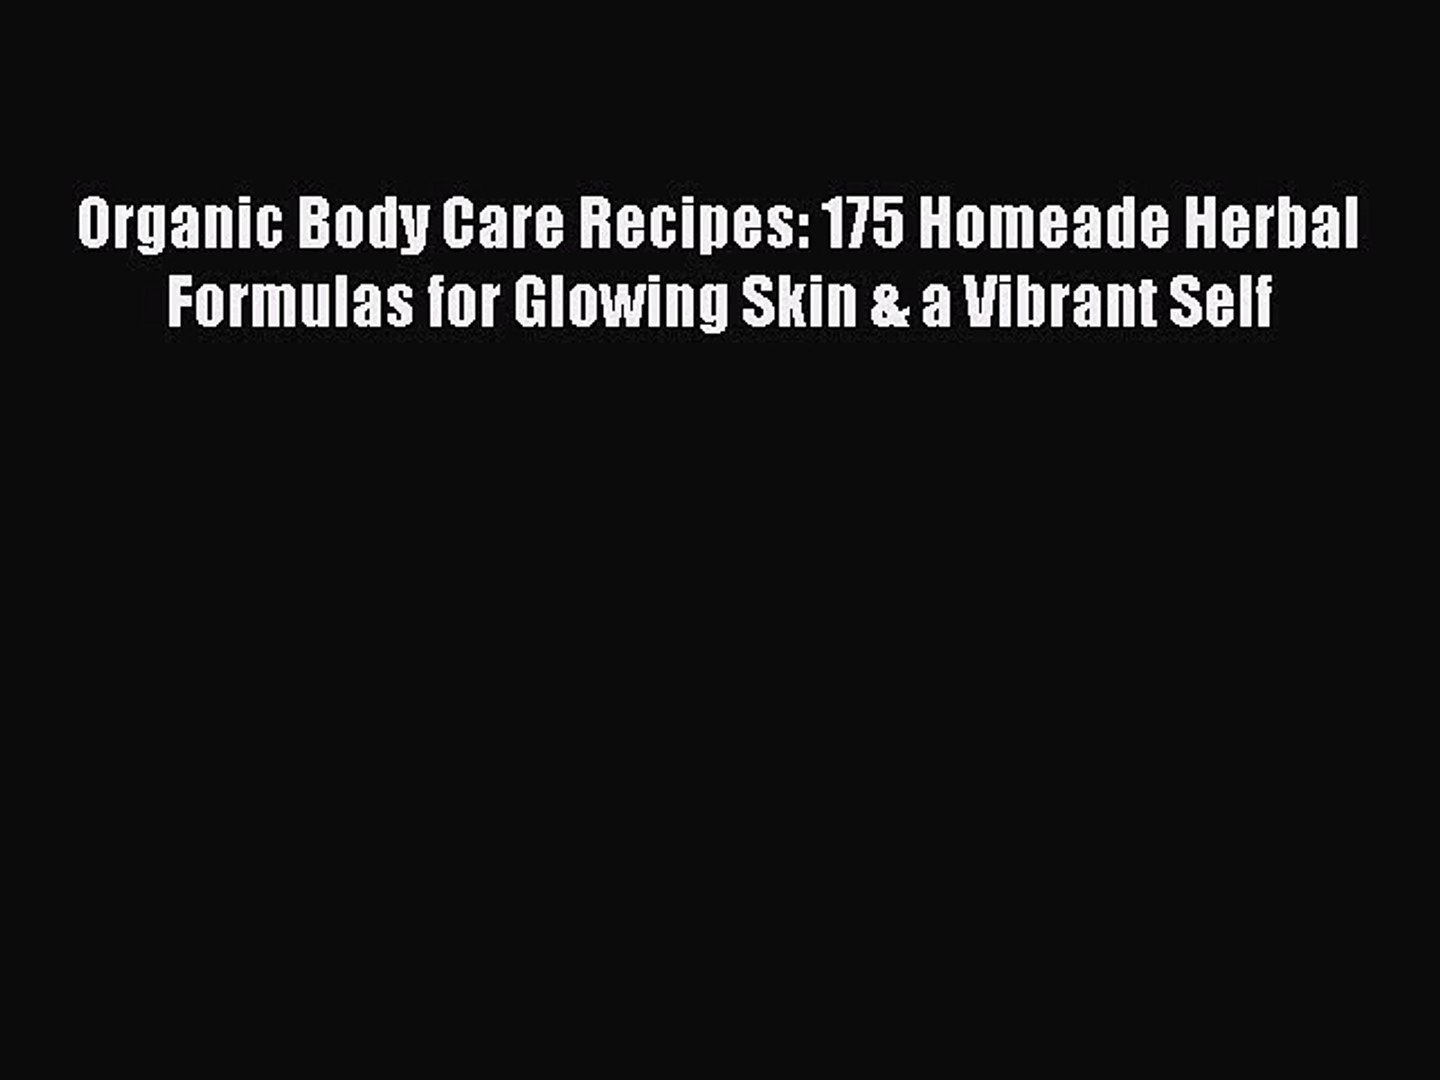 Download Organic Body Care Recipes: 175 Homeade Herbal Formulas for Glowing Skin & a Vibrant